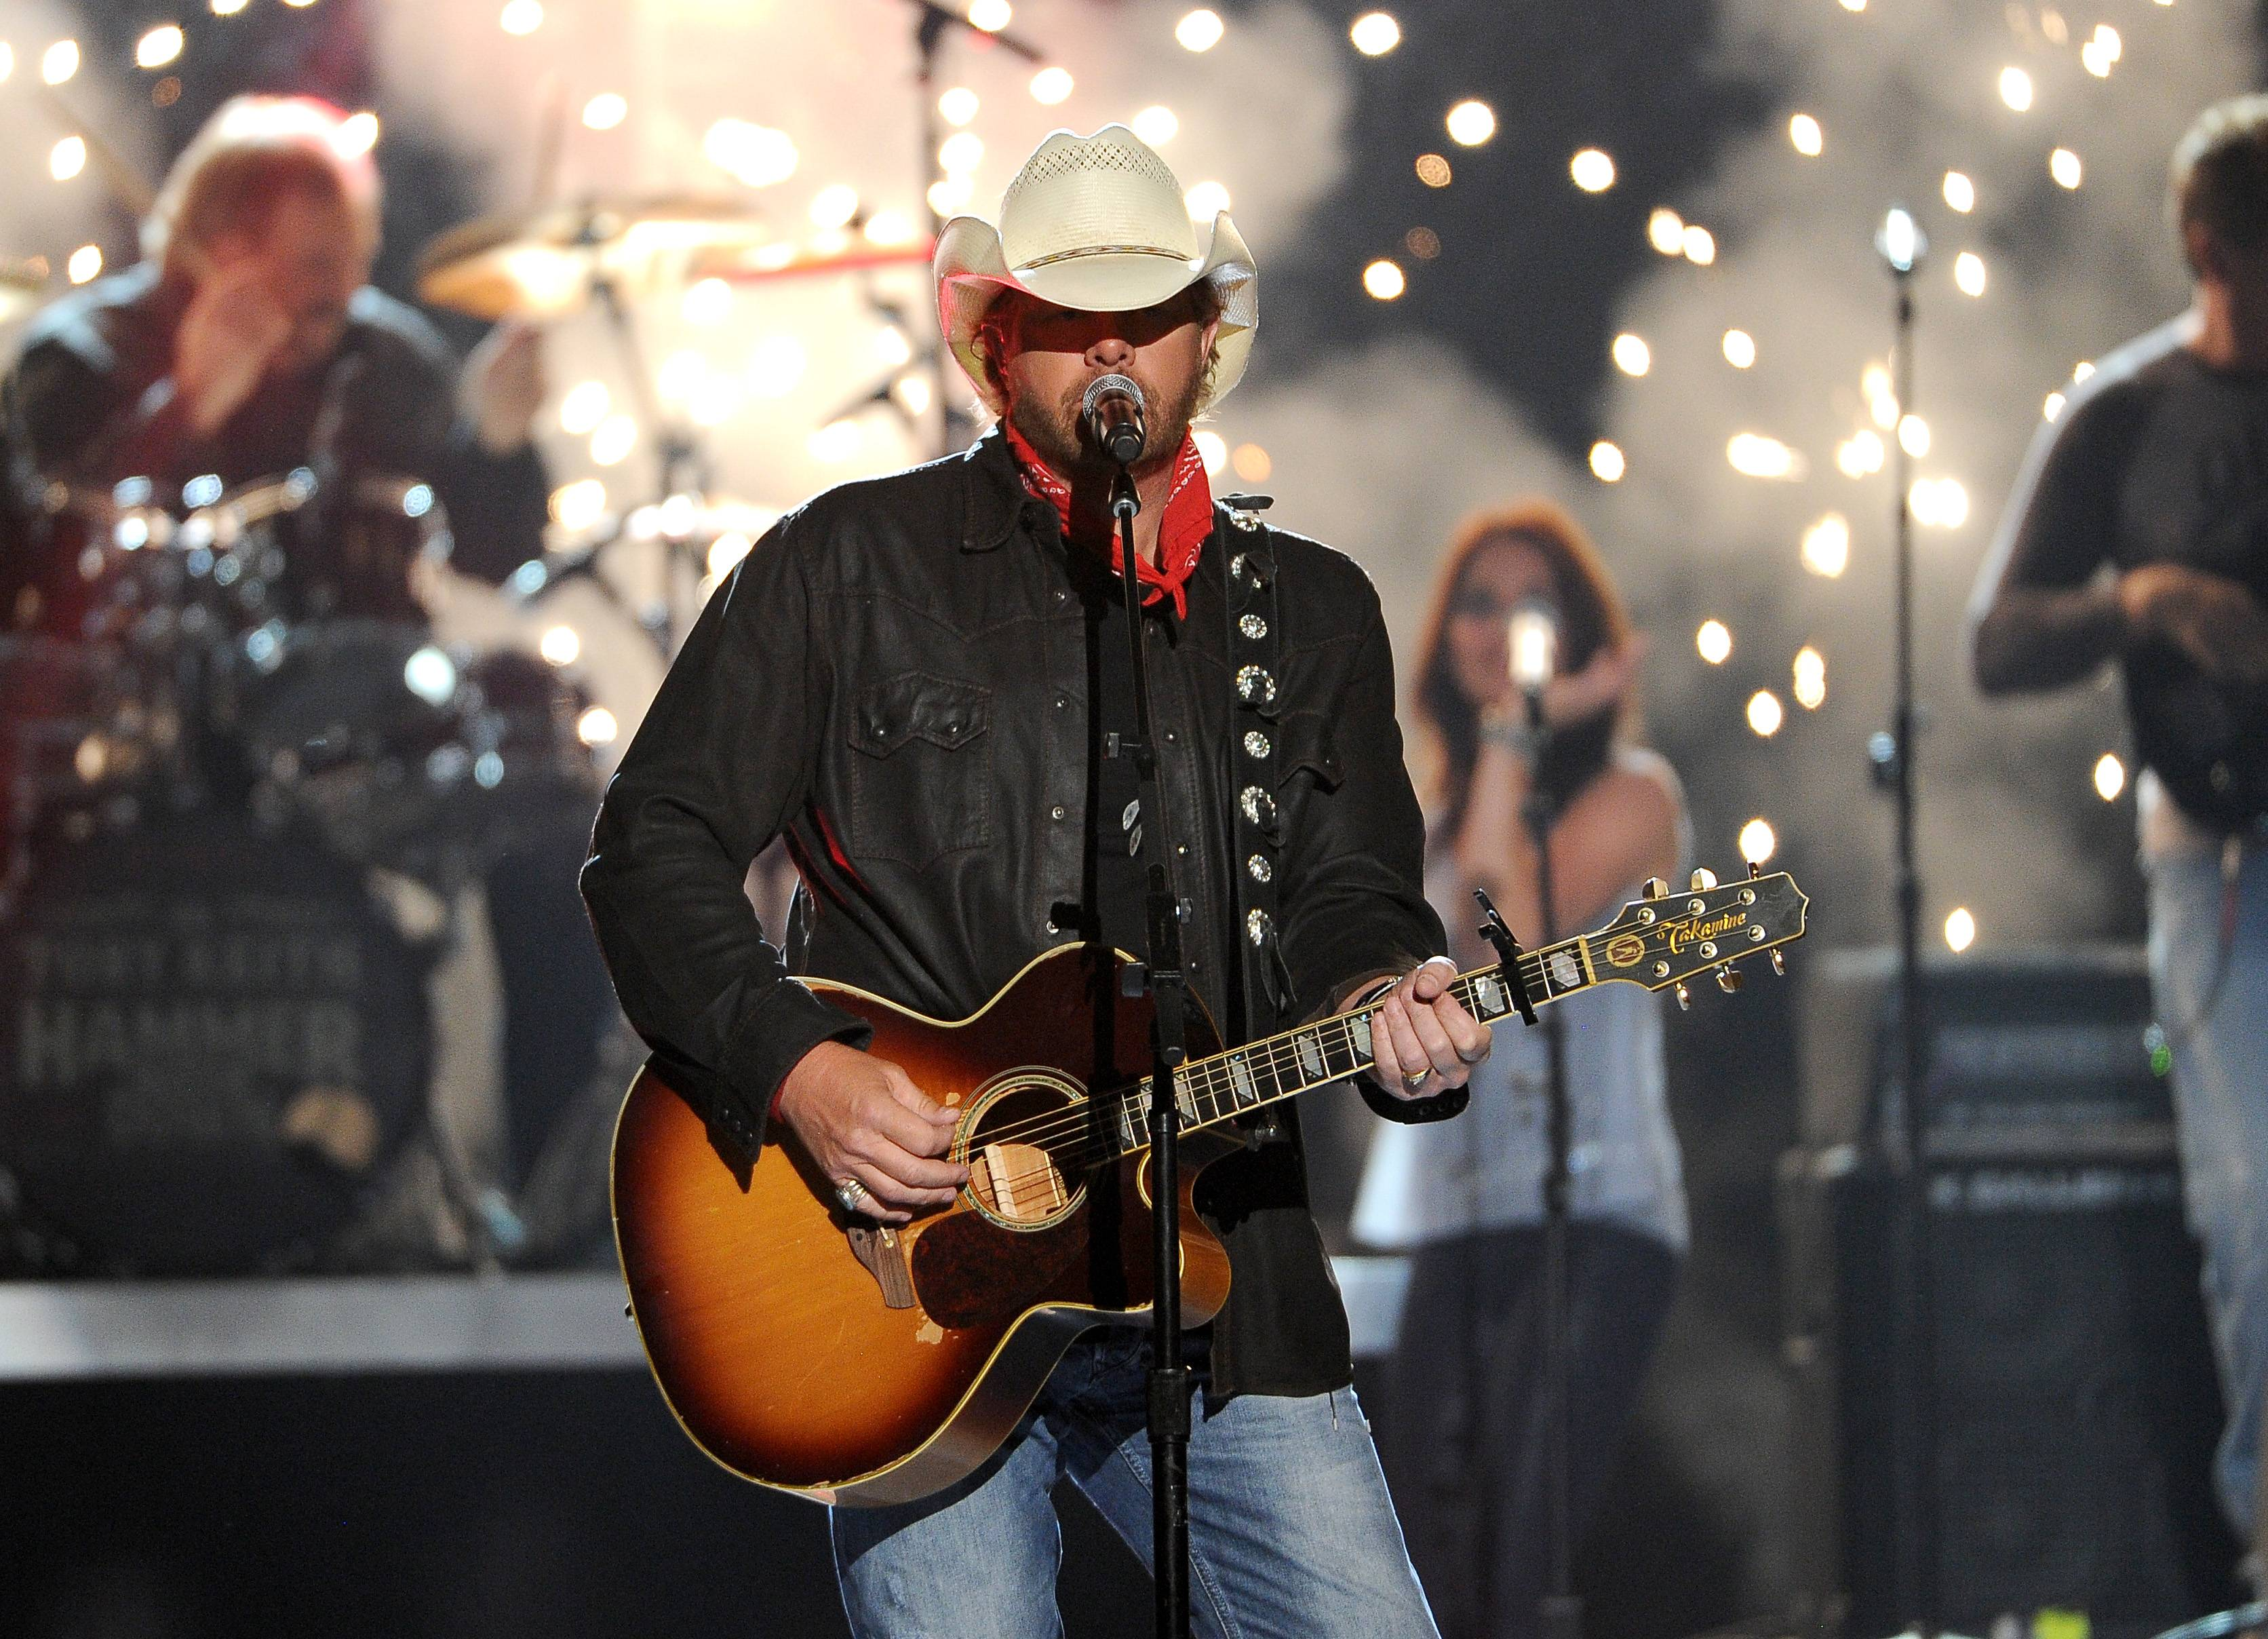 Toby Keith performs on stage at the 49th annual Academy of Country Music Awards.